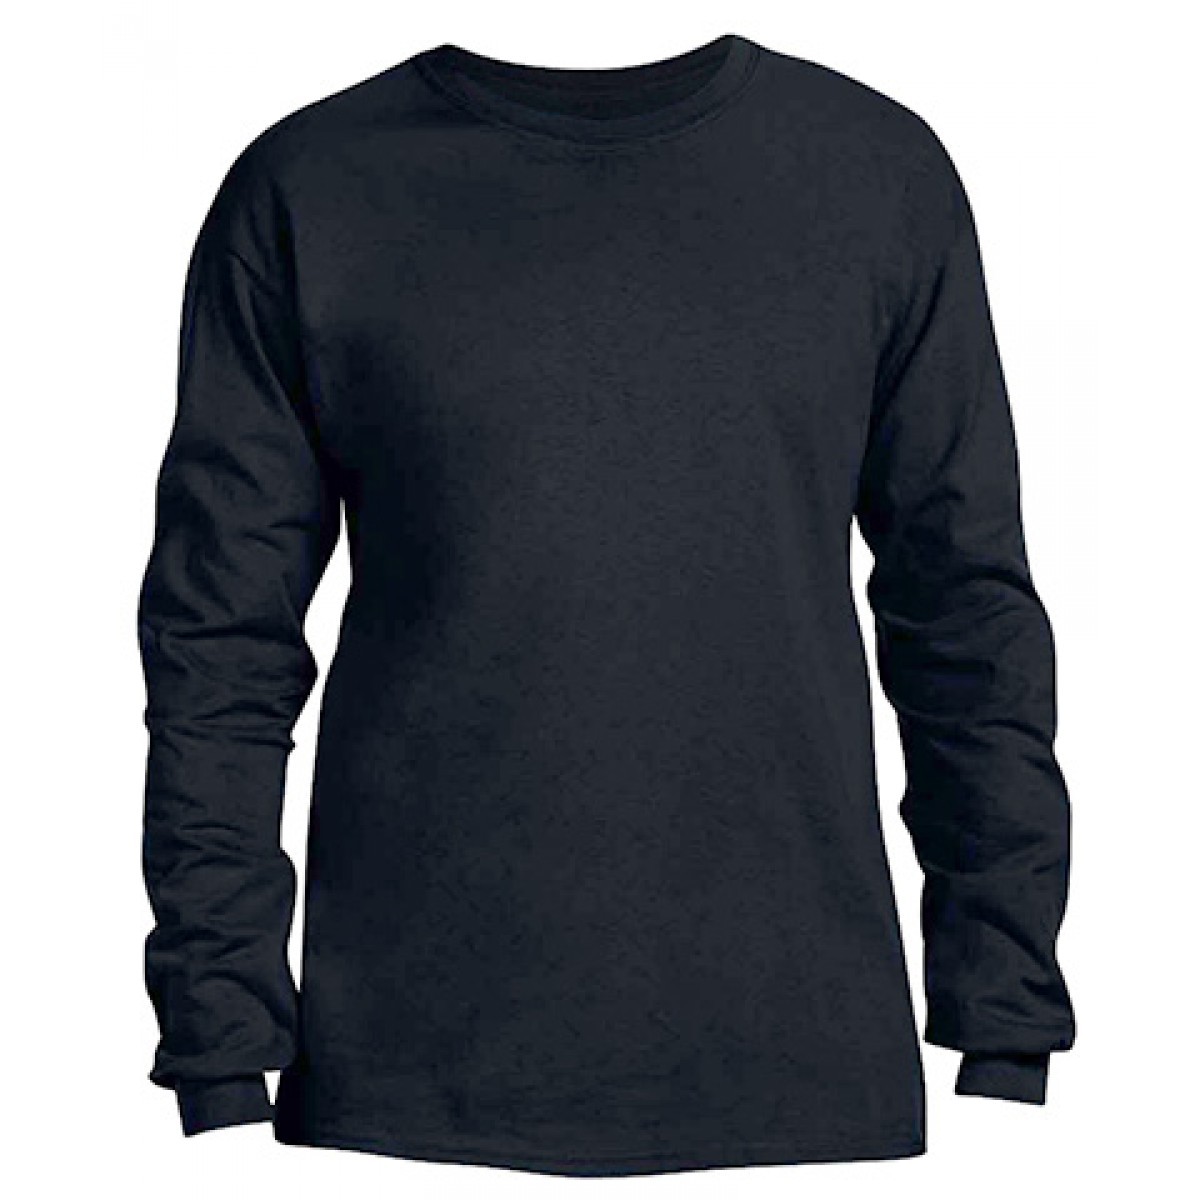 Heavy Cotton Long-Sleeve Adidas Shirt-Black-M